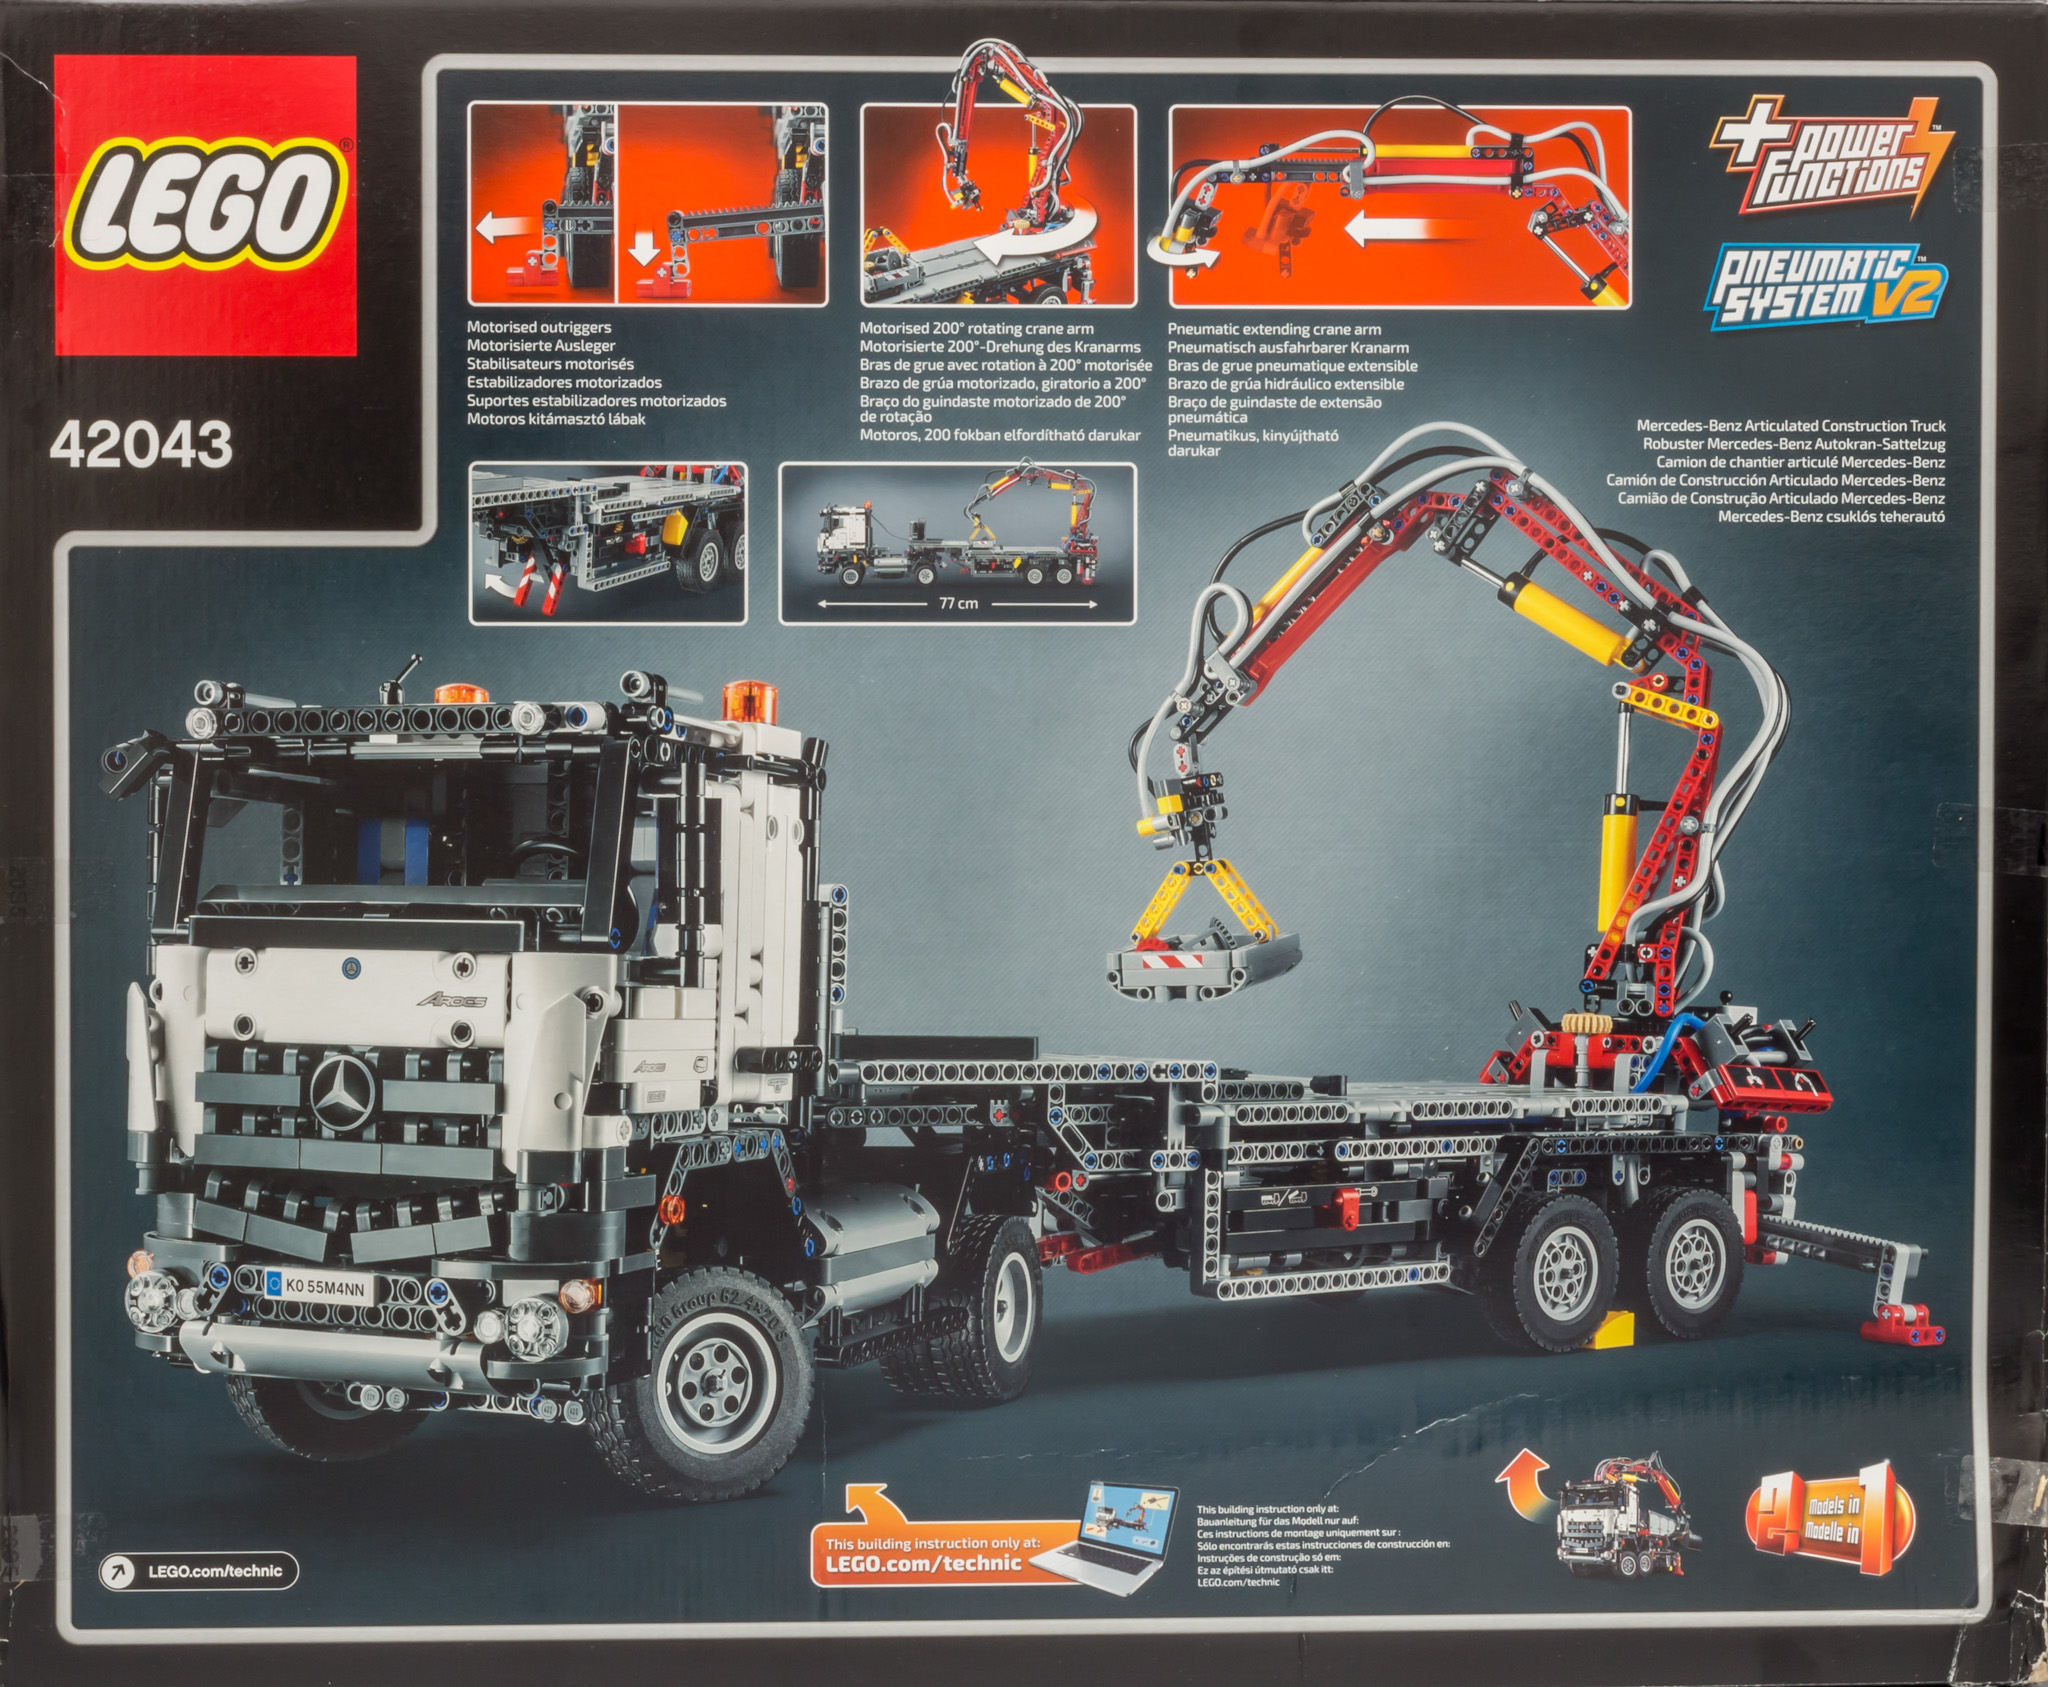 Lego 42043 mercedes benz arocs by ryanthescooterguy on for Lego technic 42043 mercedes benz arocs 3245 truck